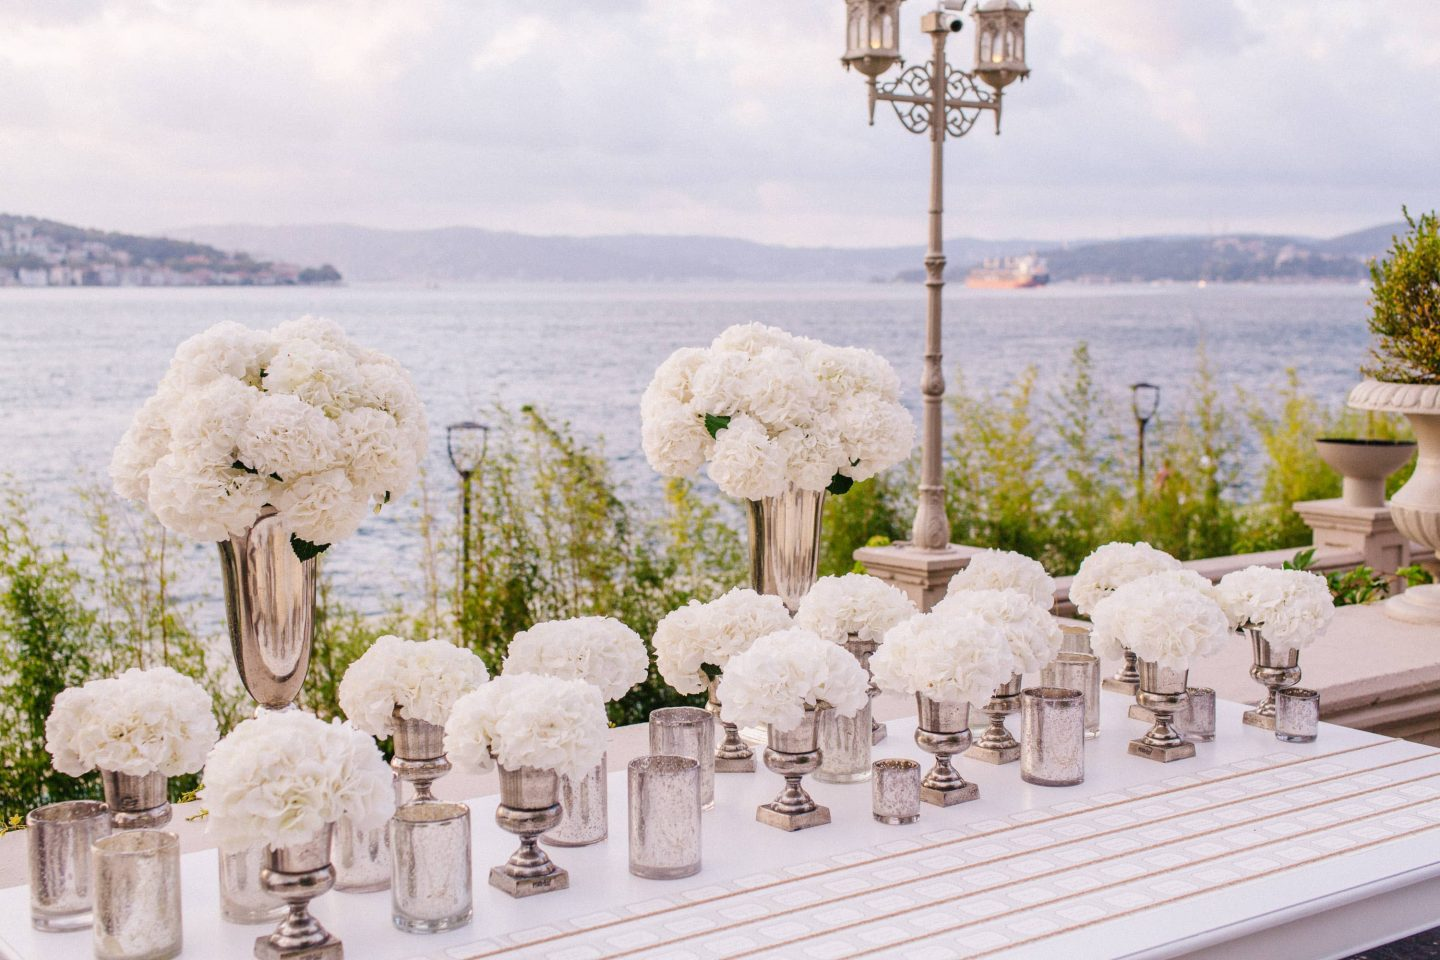 Floral decor for white party at this Istanbul wedding weekend at Four Seasons Bosphorus | Photo by Allan Zepeda